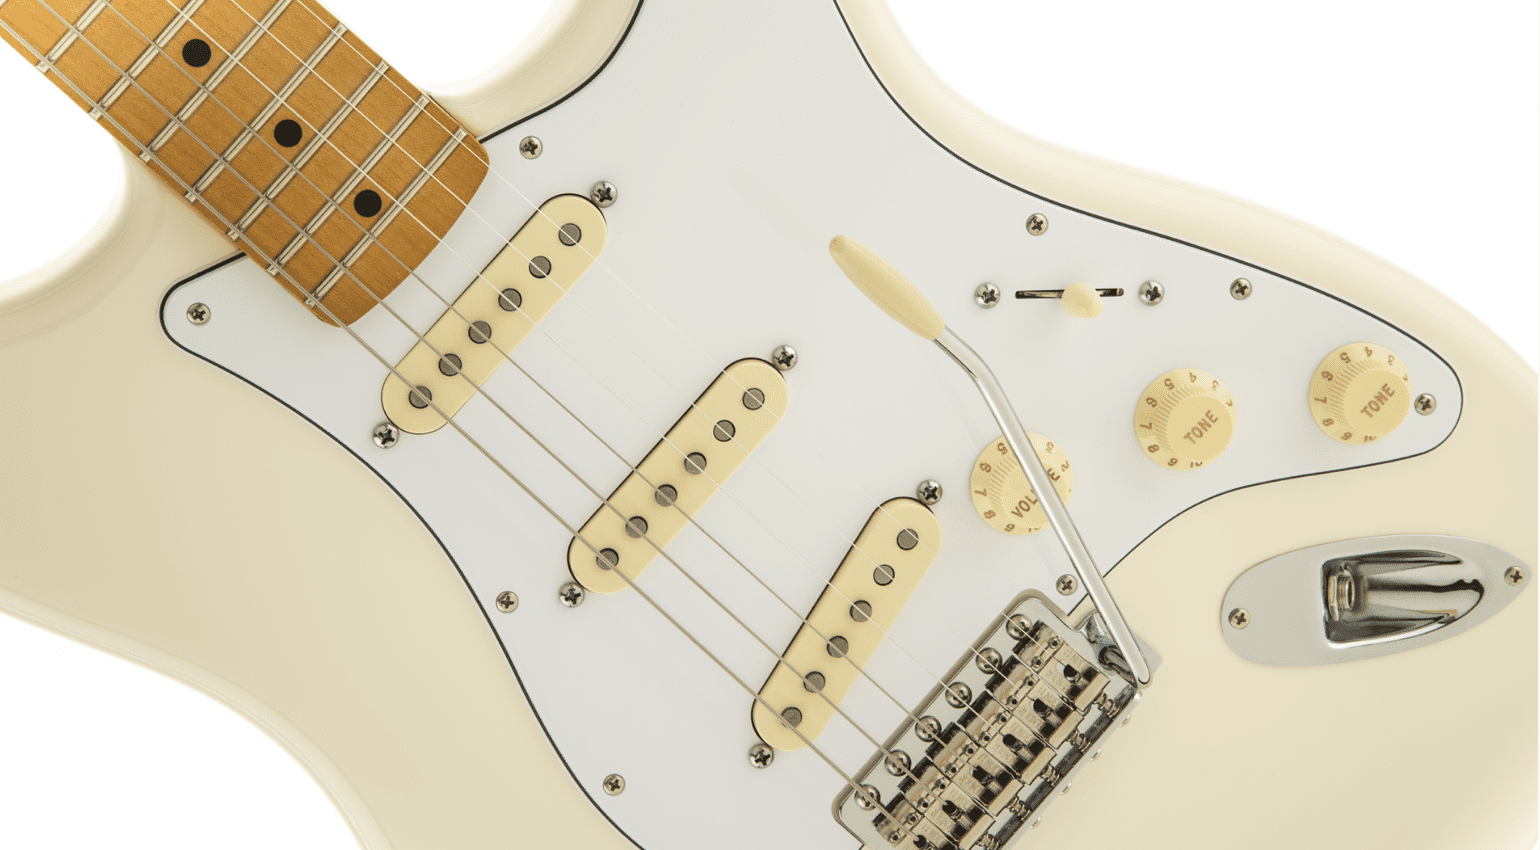 Fender Jimi Hendrix Stratocaster - Bold As Love? - gearnews com